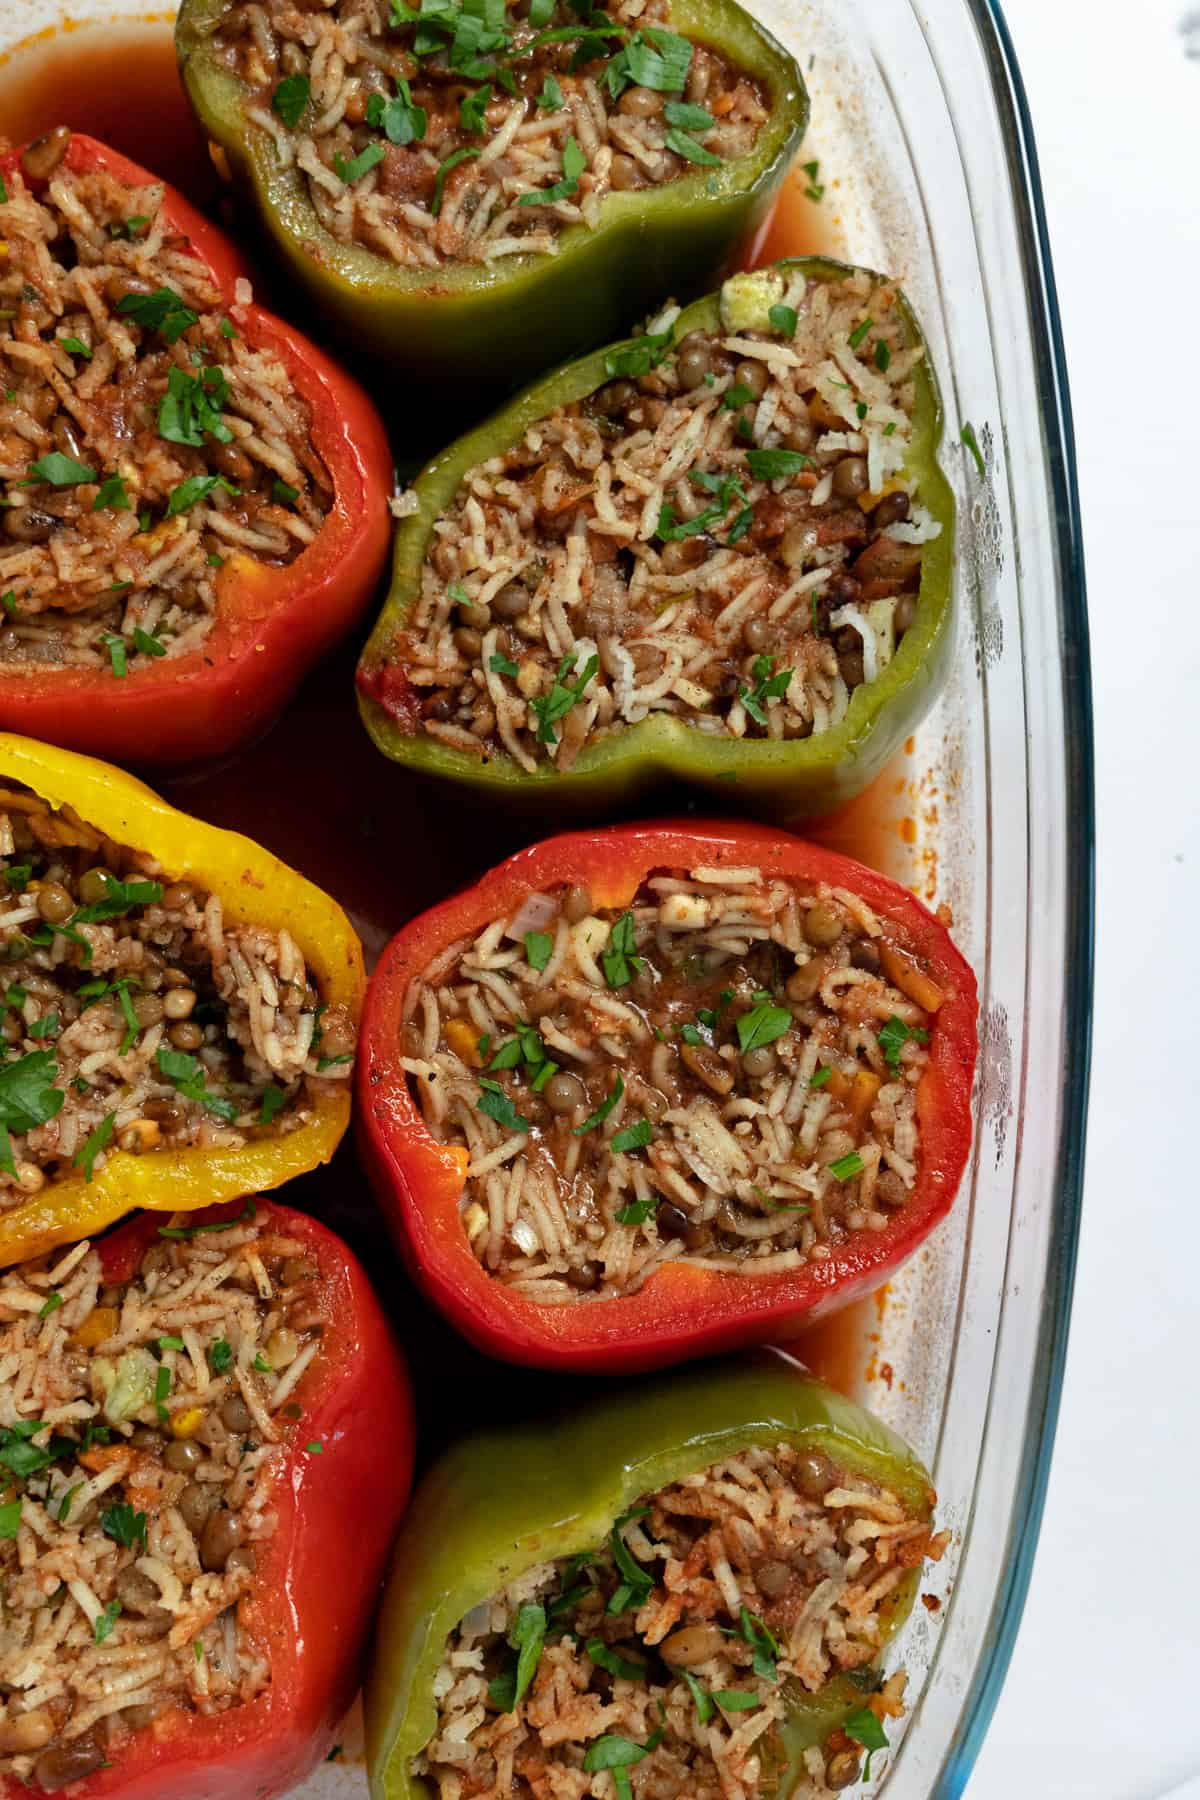 a top down view 6 stuffed capsicums filled with rice and lentils